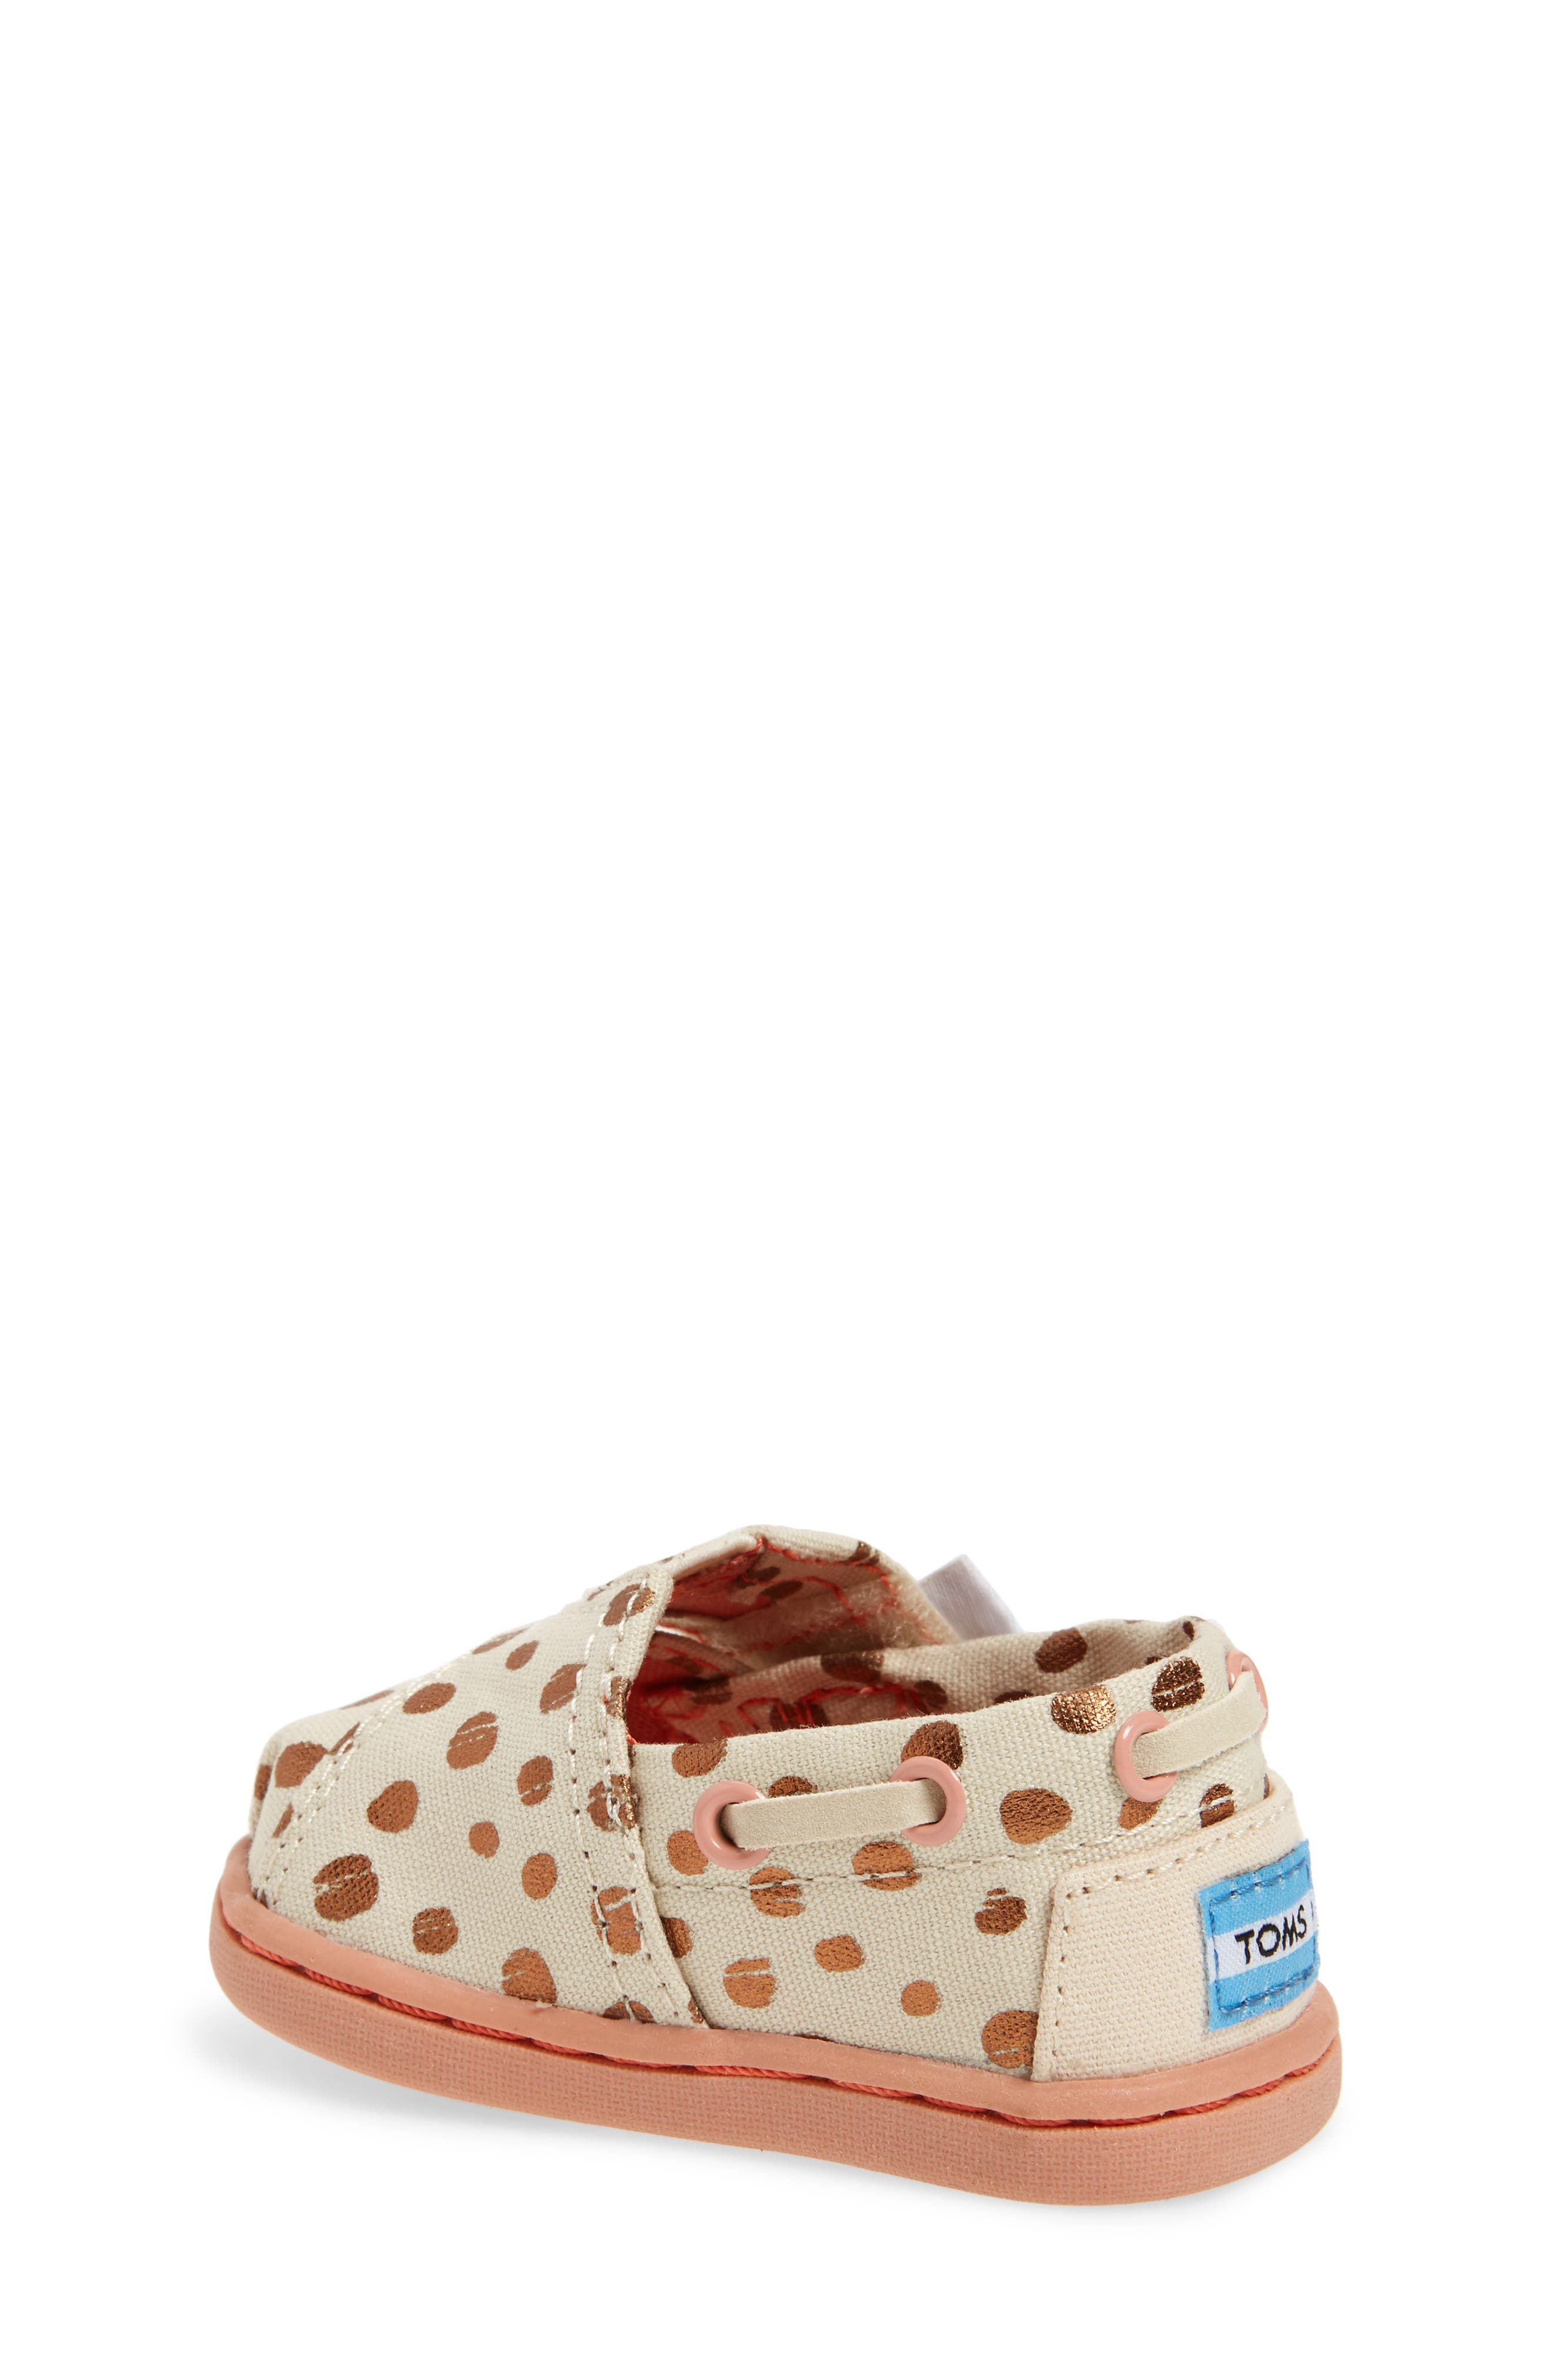 nordstrom girls toms c and grey shoes cribs crib walker all baby